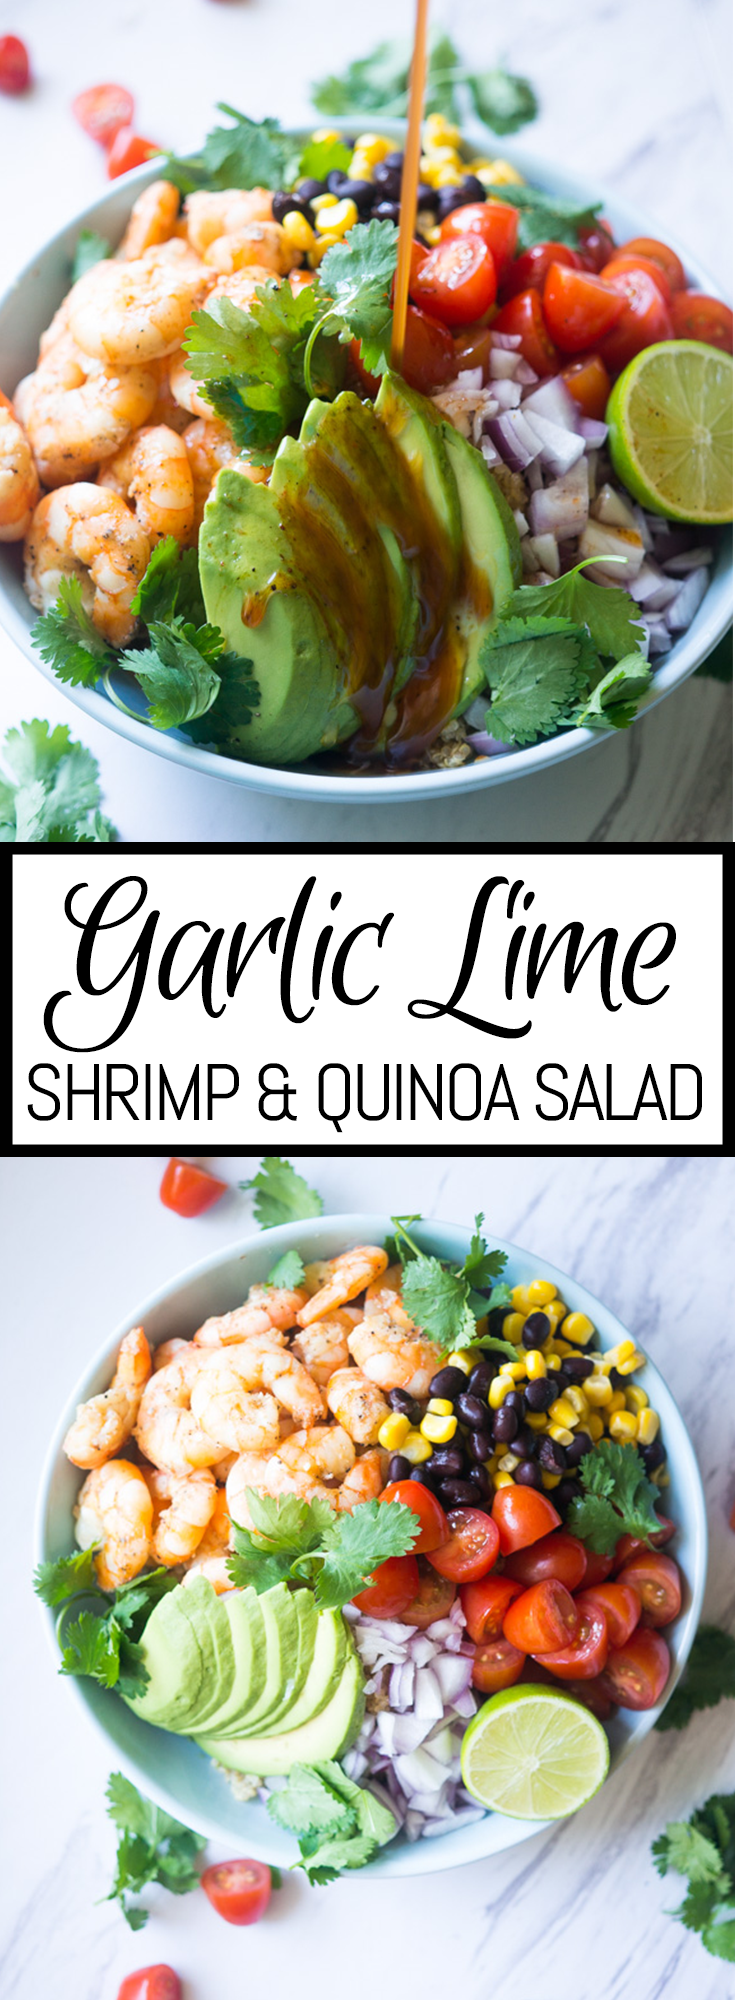 Garlic Lime Shrimp and Quinoa Salad. A zesty, nutrient dense salad that will wow your guests with its amazing fresh flavors!